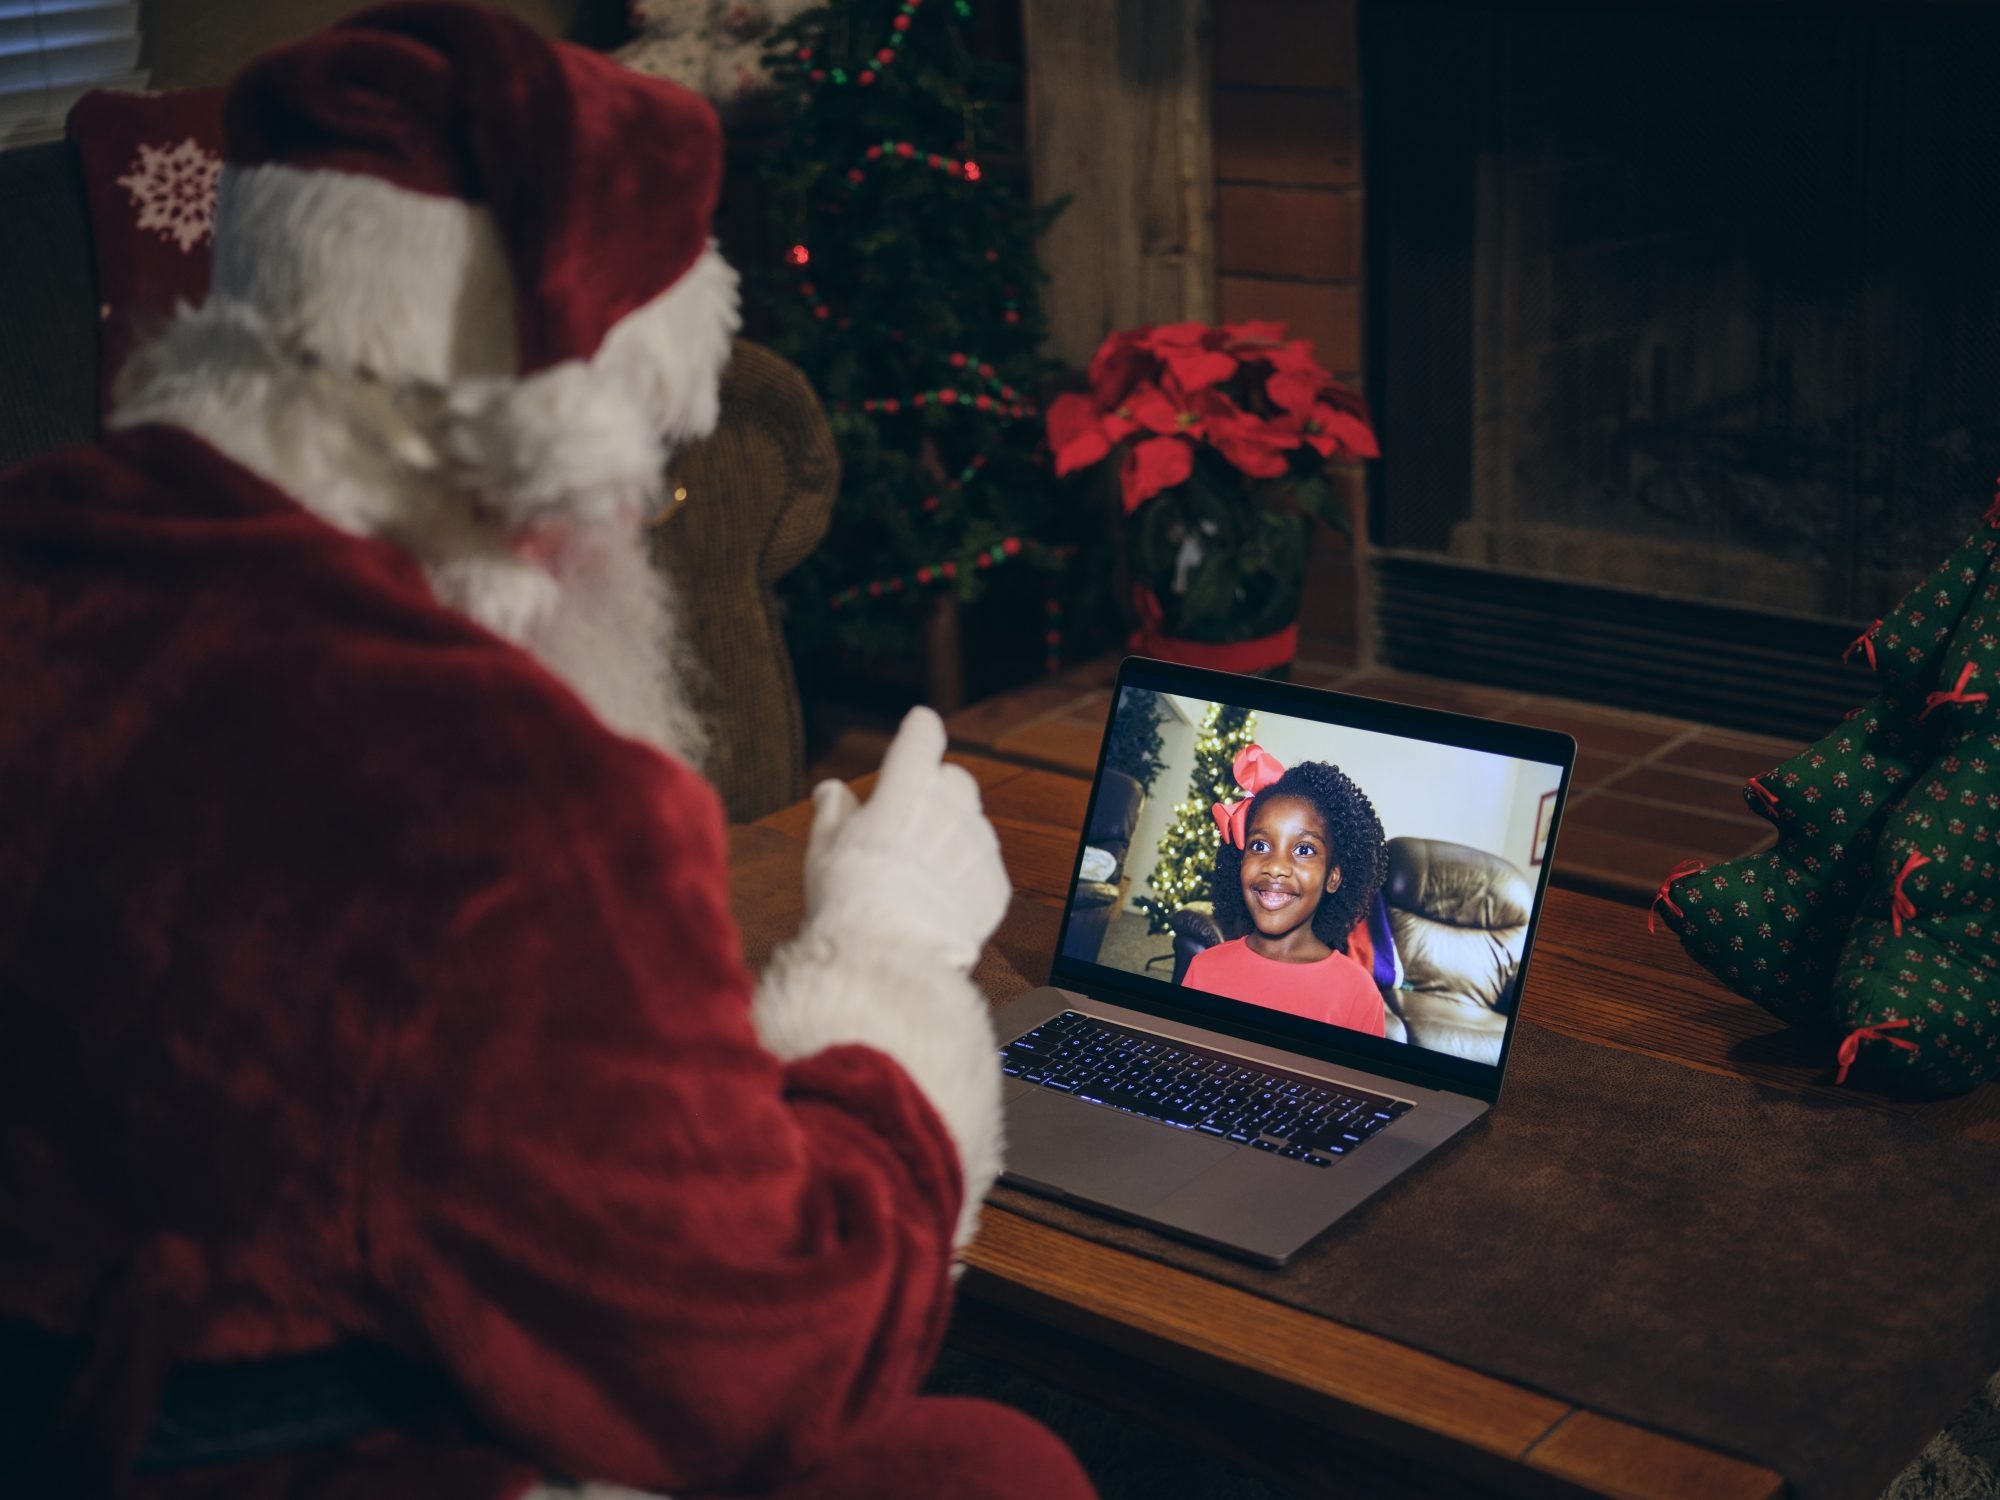 Santa Claus on a Video Conference Call